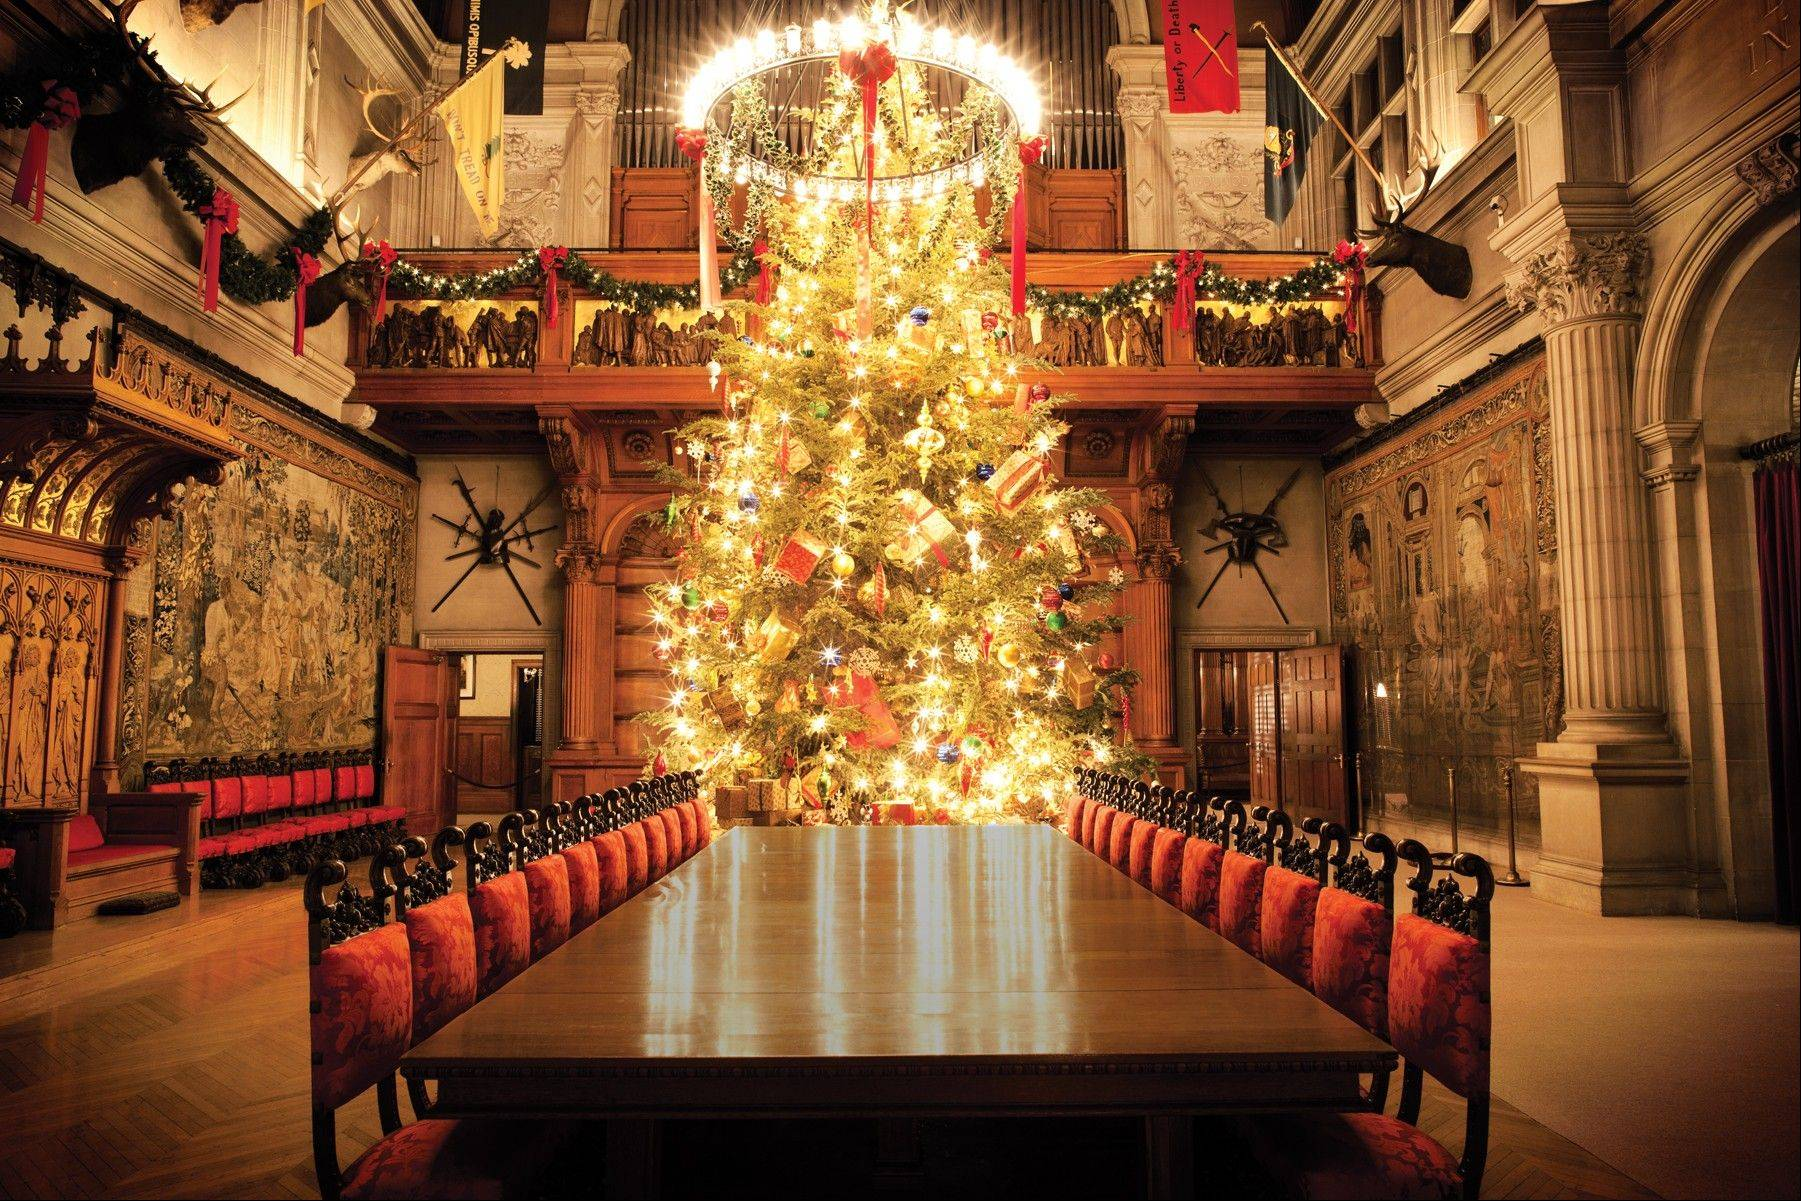 The Biltmore Estate in Asheville, N.C., offers 56 decorated trees in the main house.